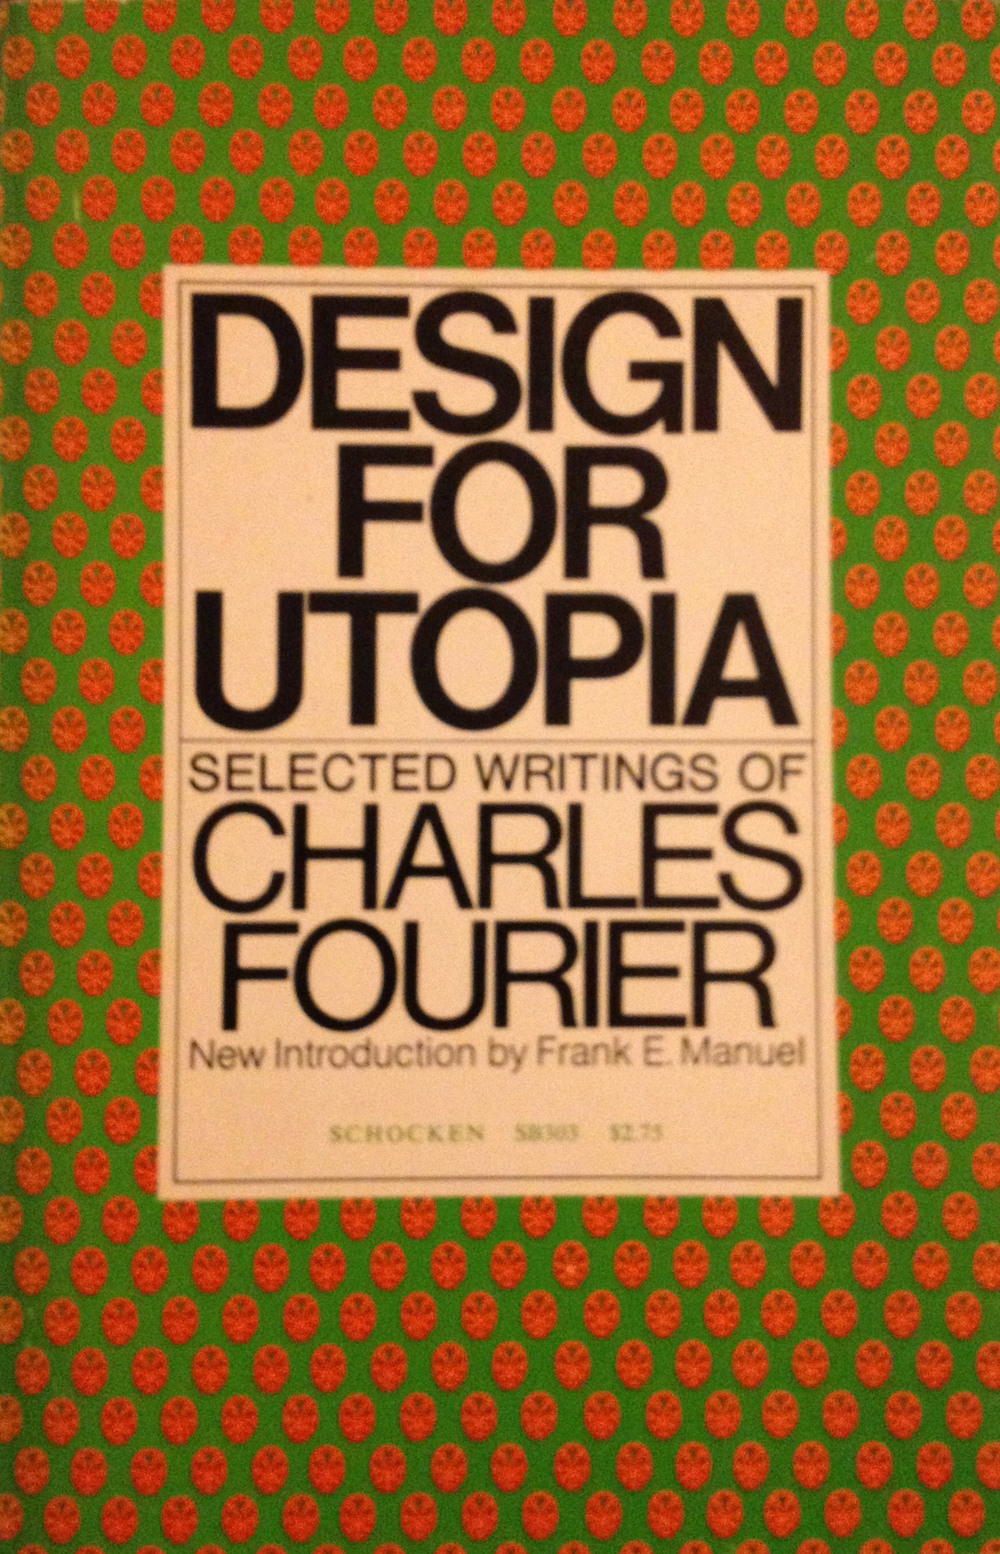 DESIGN FOR UTOPIA